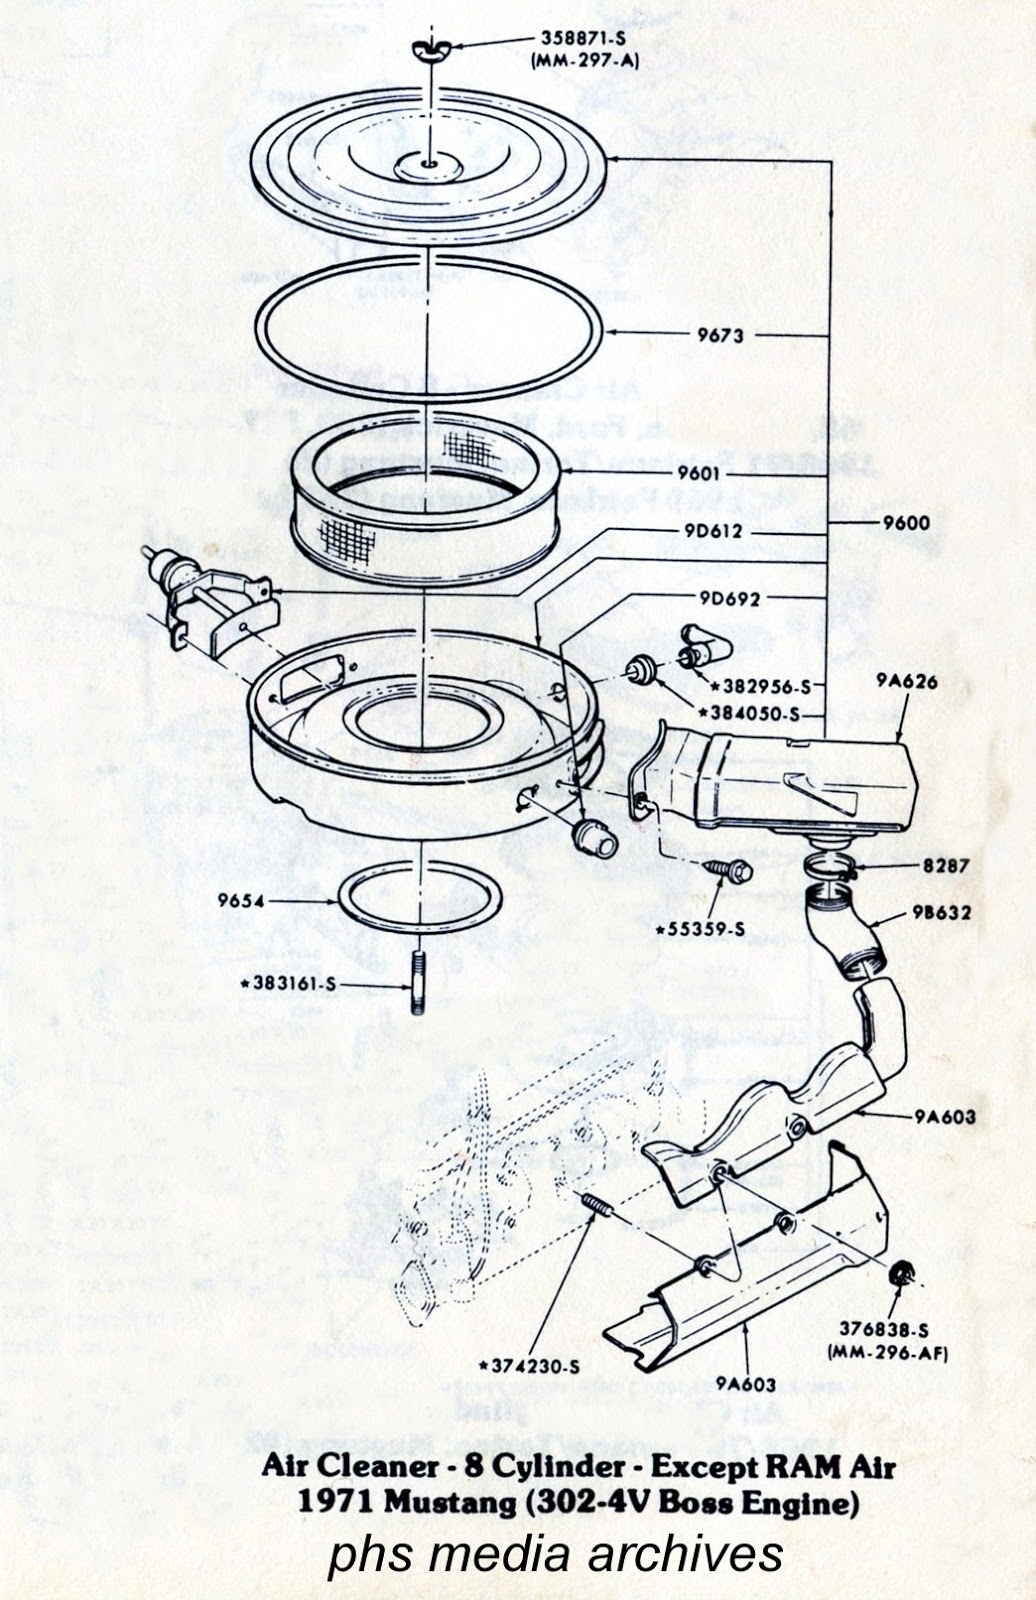 medium resolution of the base six cylinder 250 cid air cleaner unit for the 1971 model specific model year is not shown we have included an engine diagram which has the air